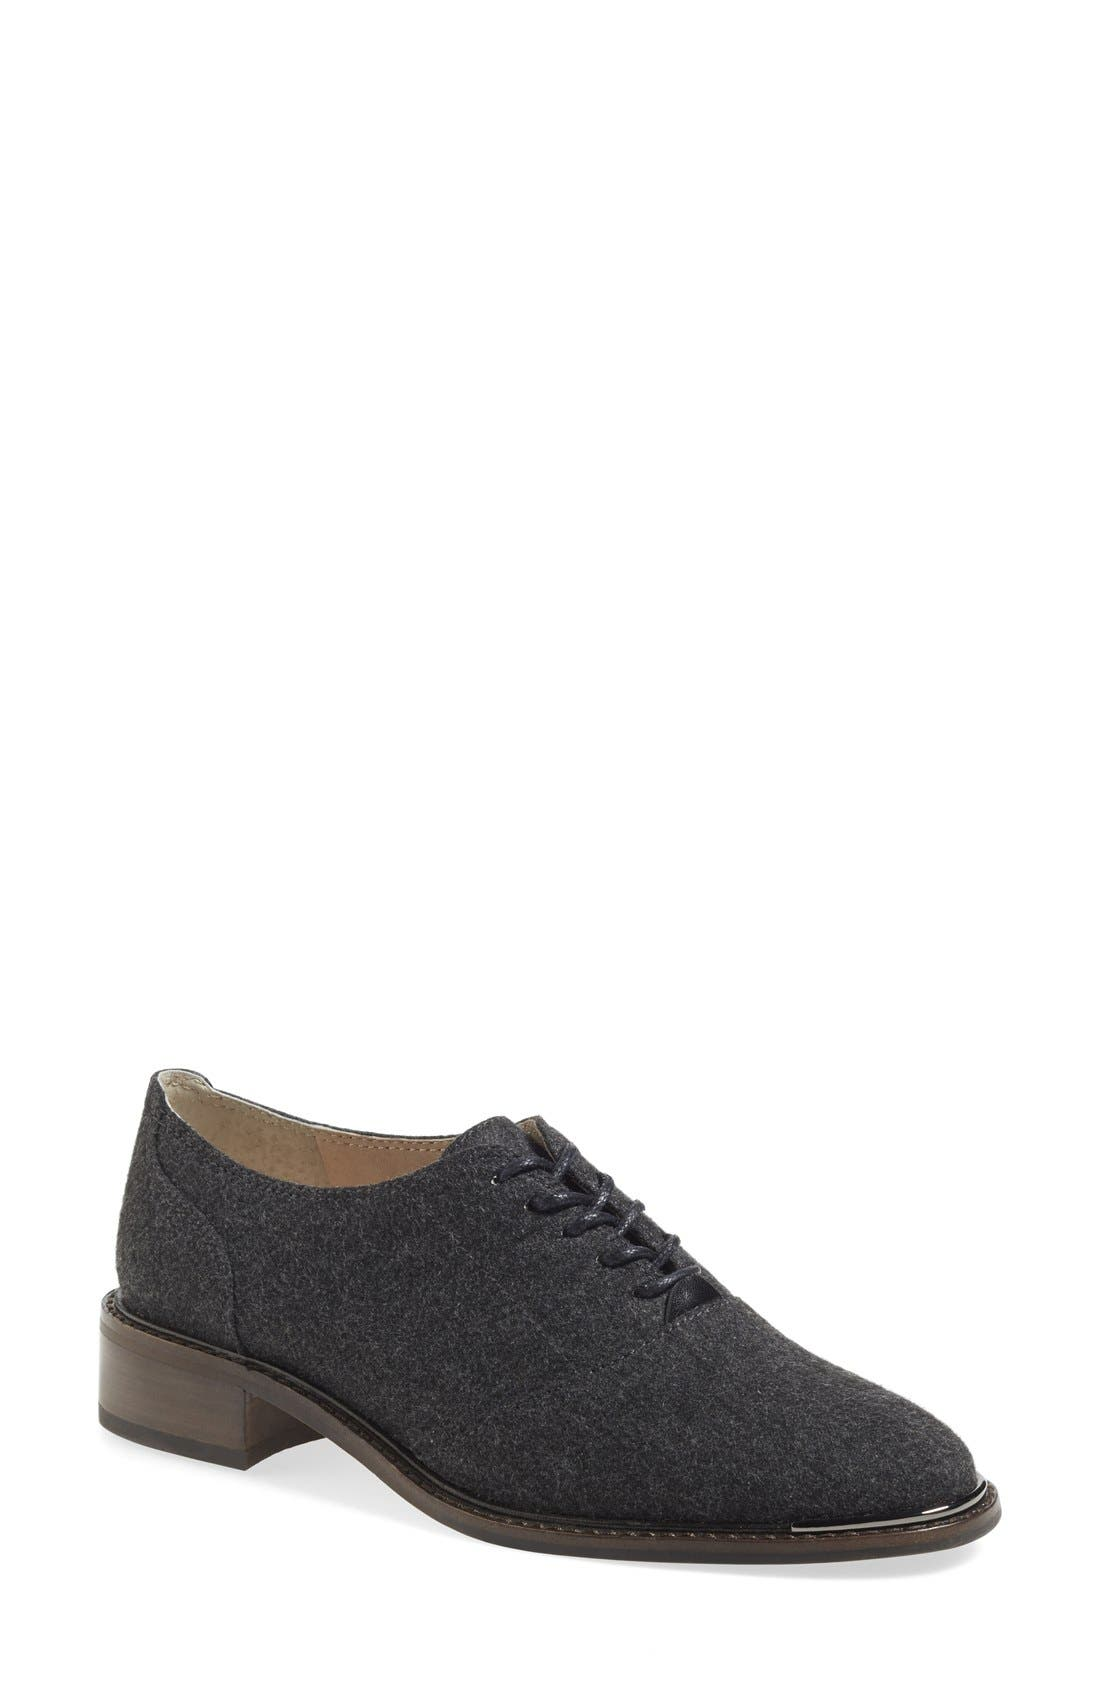 Alternate Image 1 Selected - Louise et Cie 'Franny' Oxford Flat (Women) (Nordstrom Online Exclusive)